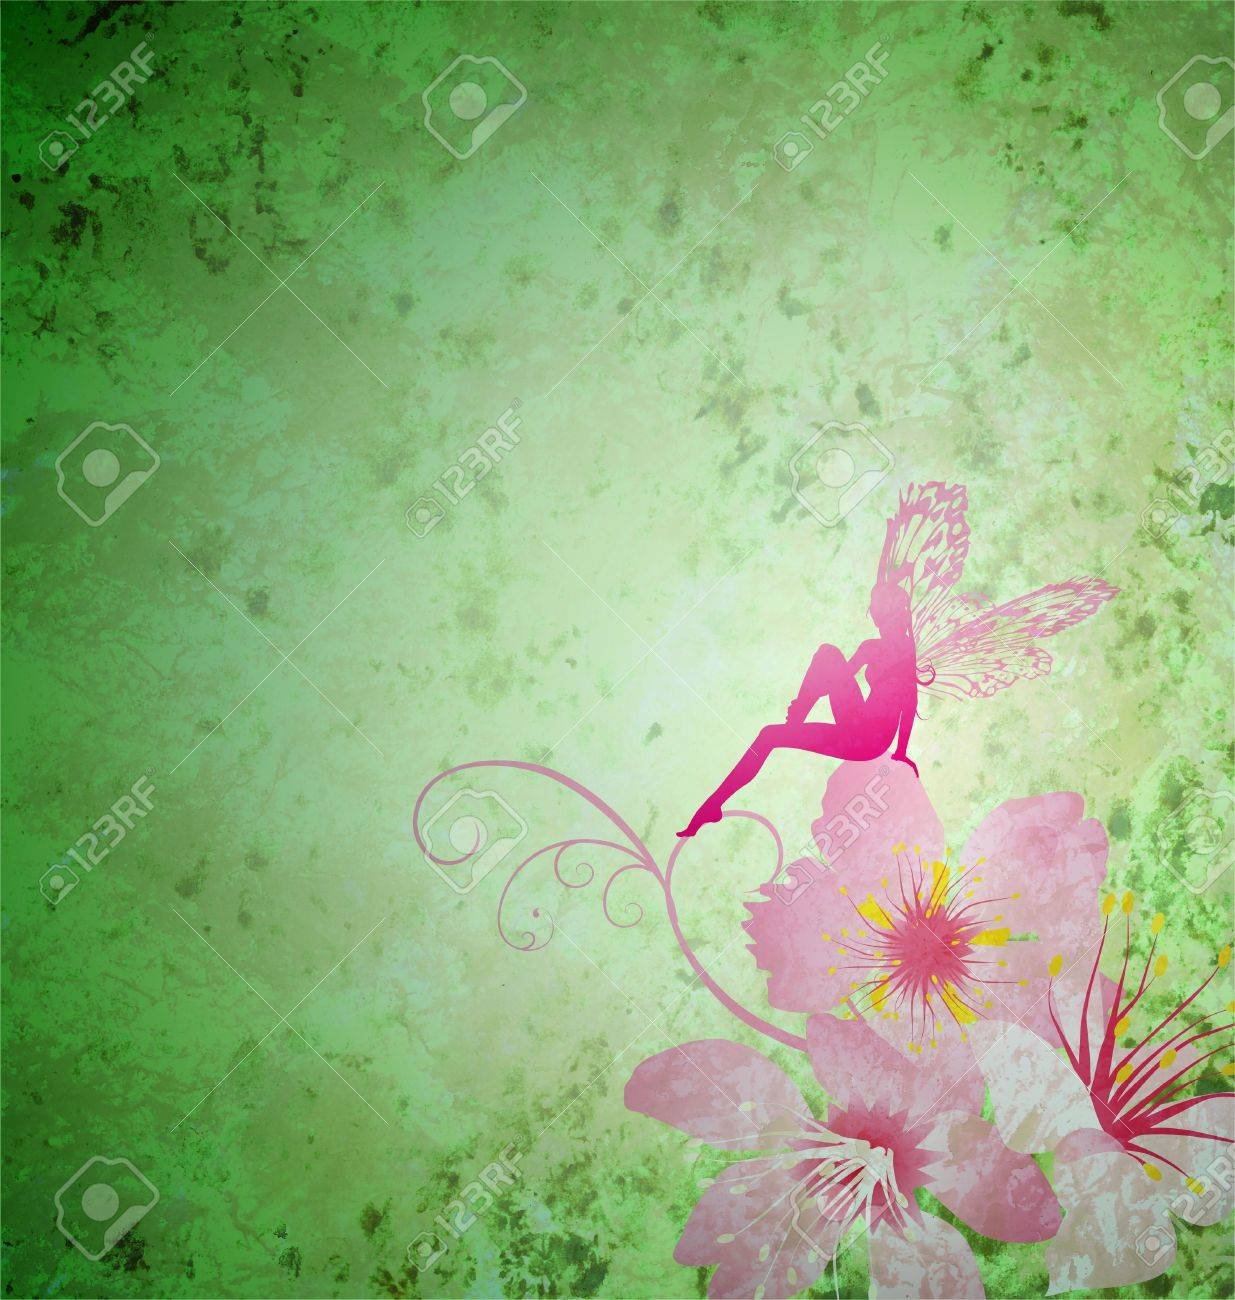 pink little flower fairy on the green spring or summer grunge background Stock Photo - 14821145